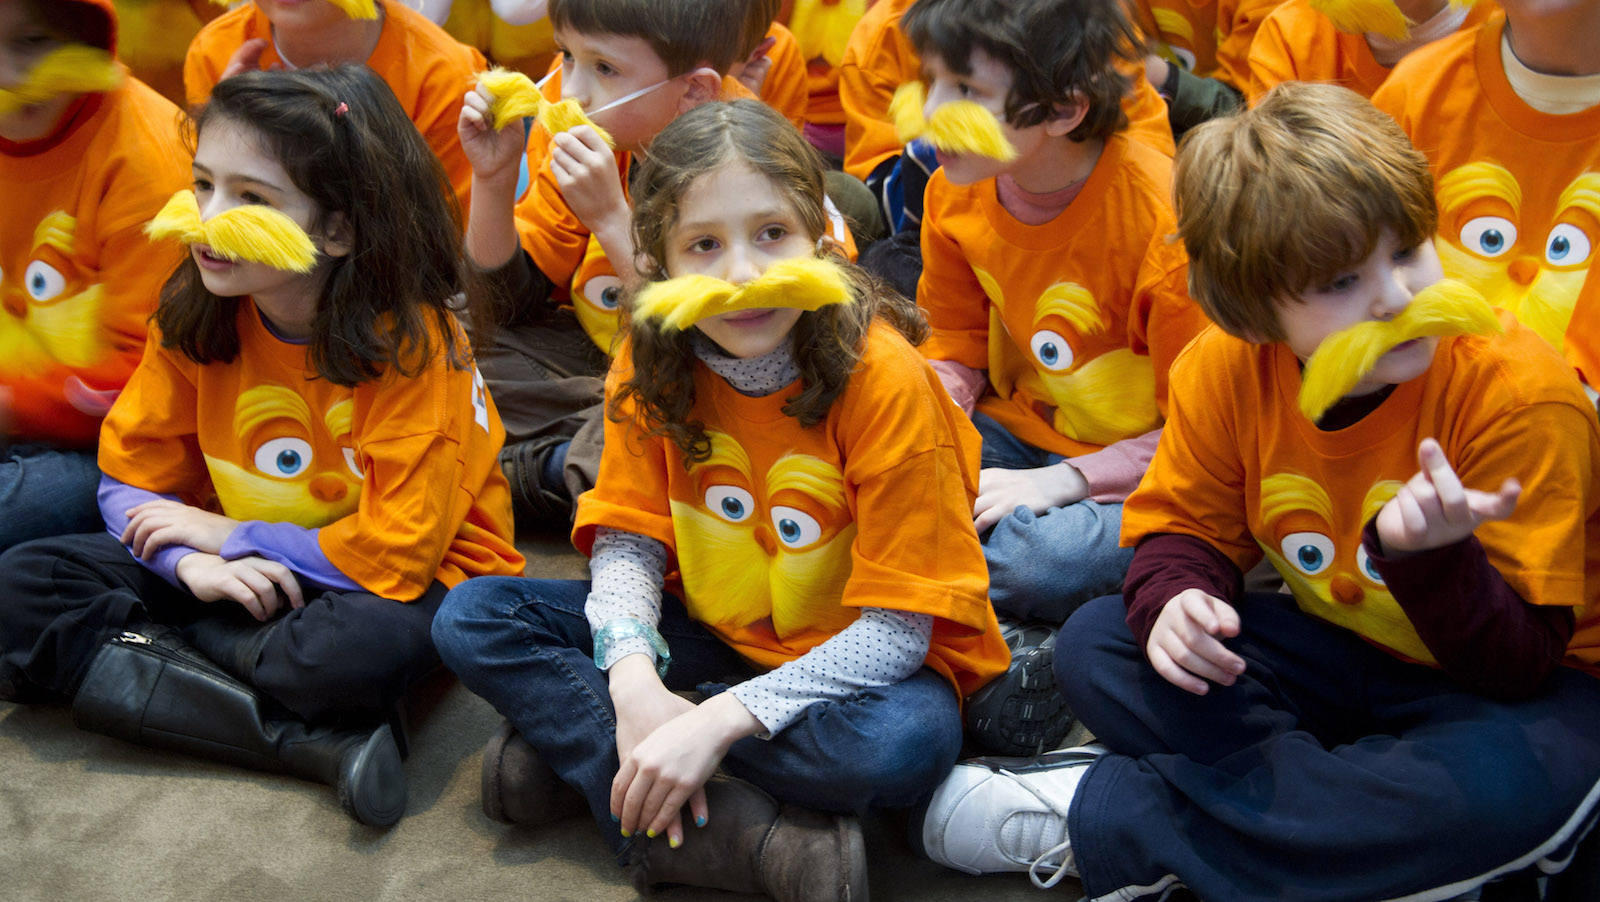 School children attend the National Education Association's 15th annual Read Across America Day at The New York Public Libary, in New York, Friday, March 2, 2012. (AP Photo/Charles Sykes)